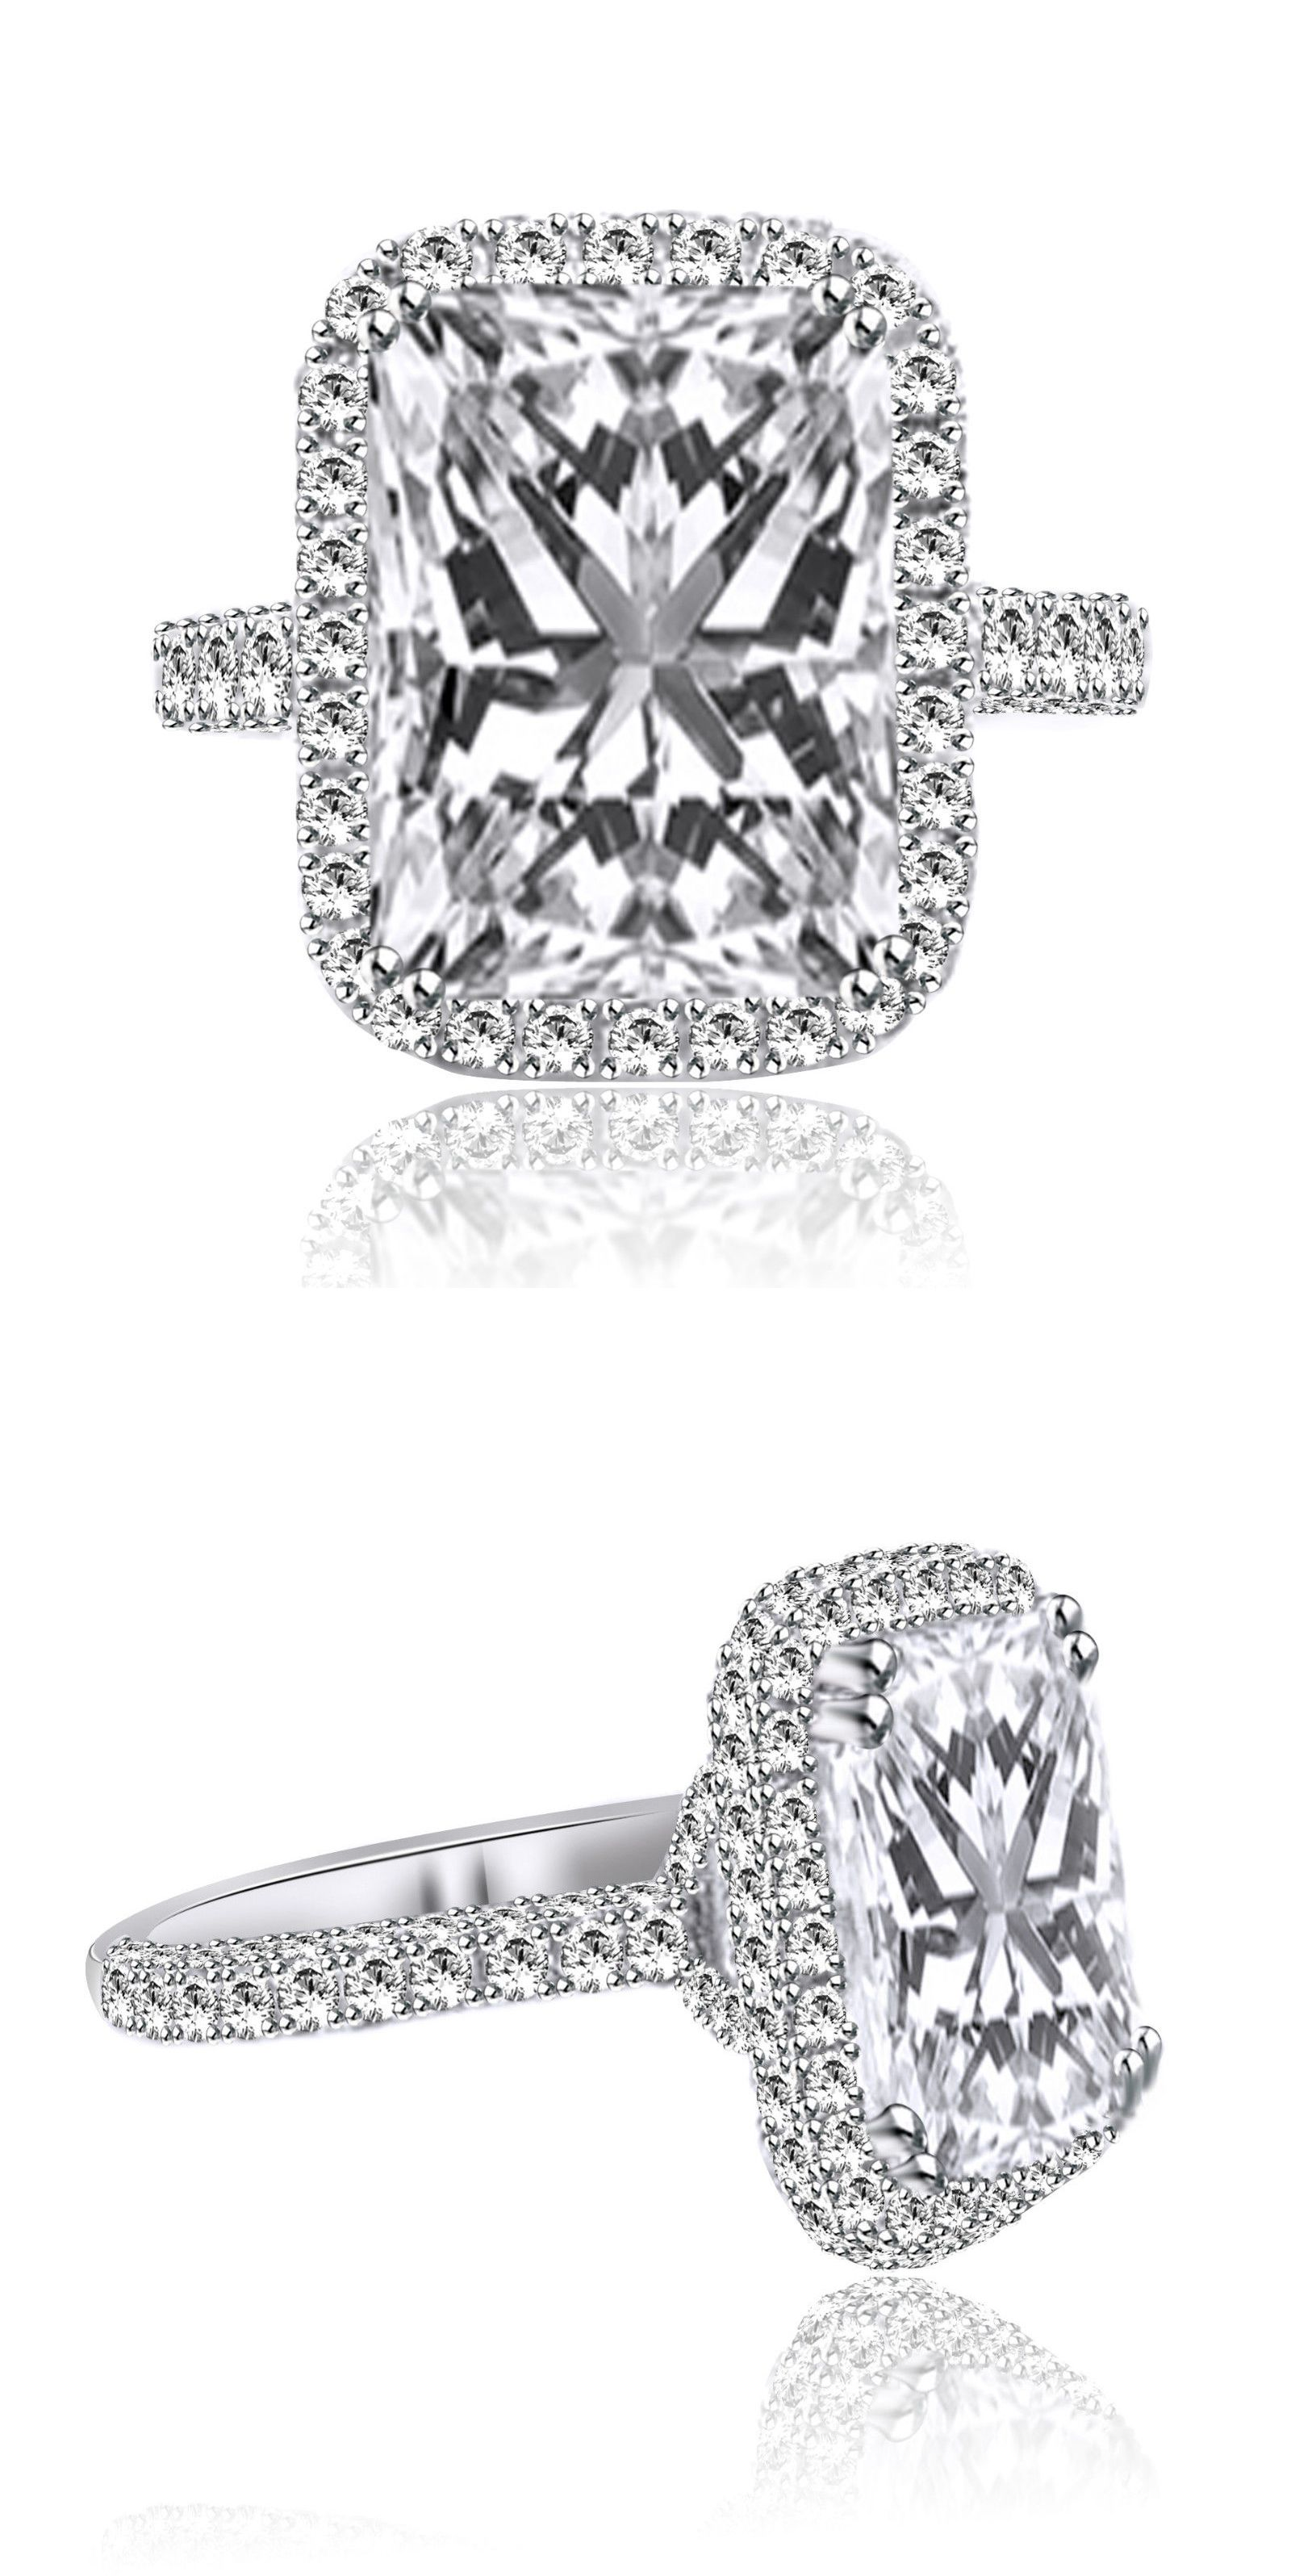 Cz moissanite and simulated ct radiant cut diamond